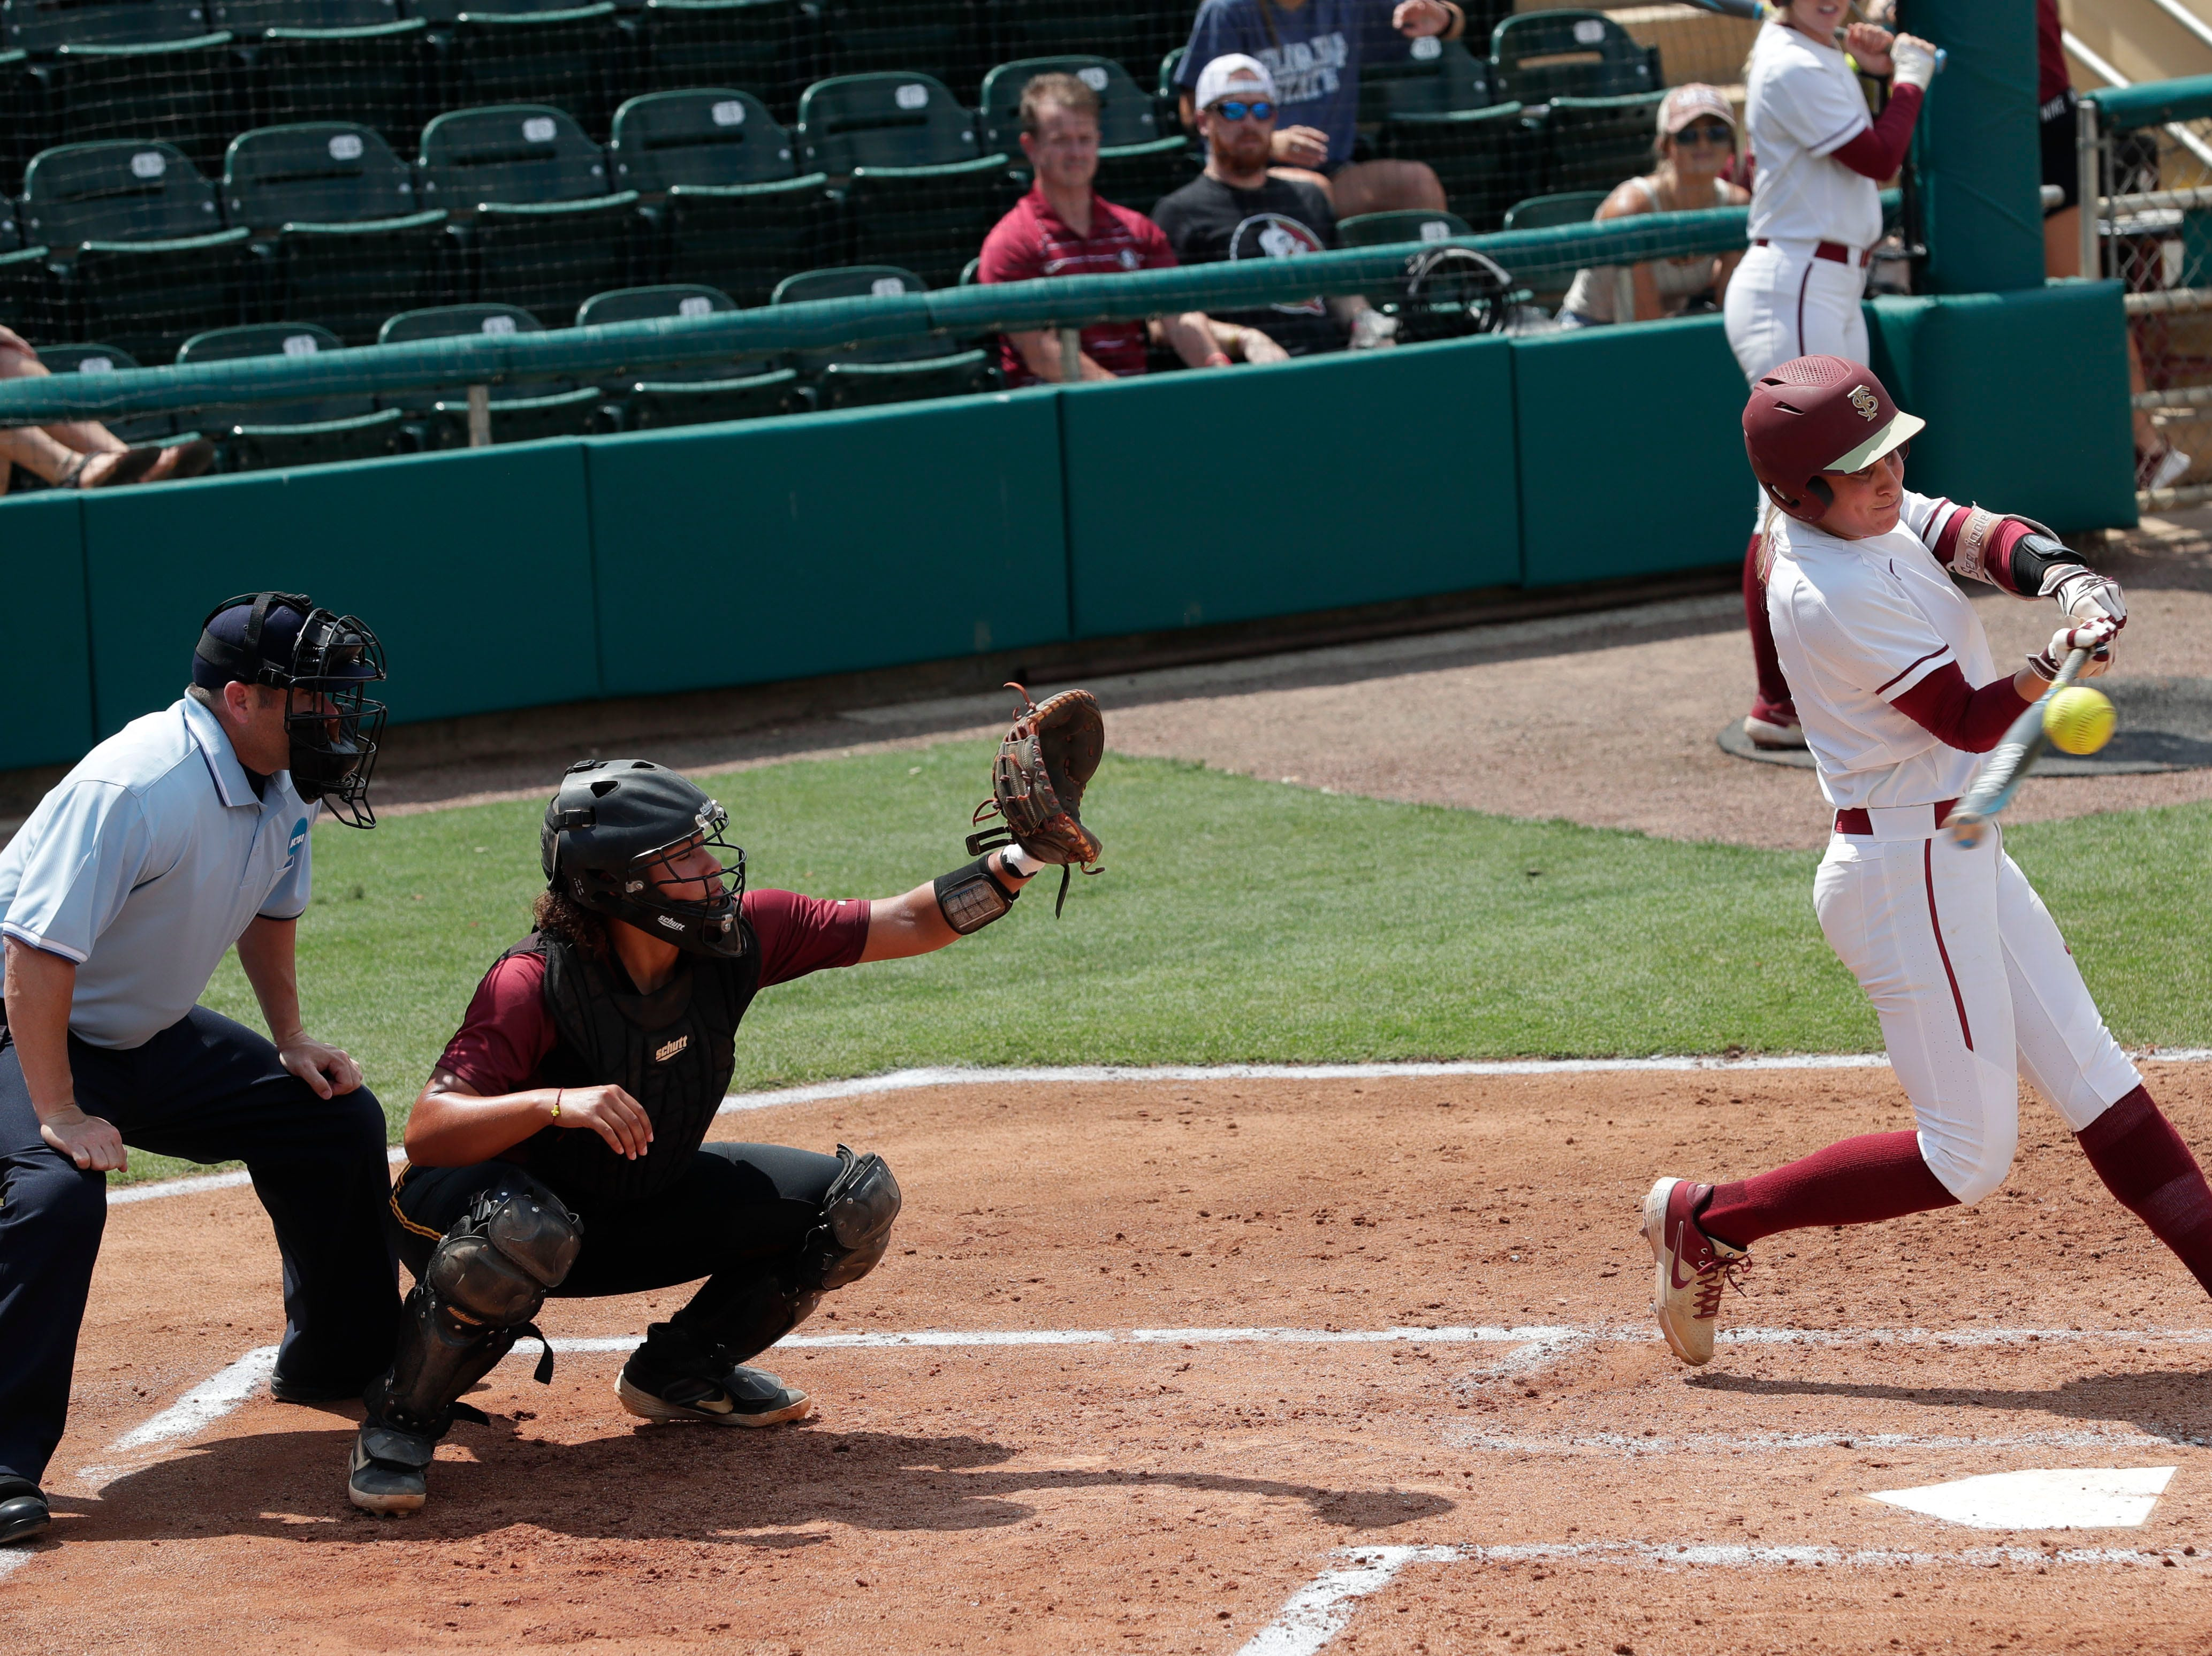 Florida State Seminoles infielder Carsyn Gordon (12) gets a hit. The Florida State Seminoles host the Bethune-Cookman Wildcats in the first round of the NCAA Regional Playoffs Friday, May 17, 2019.